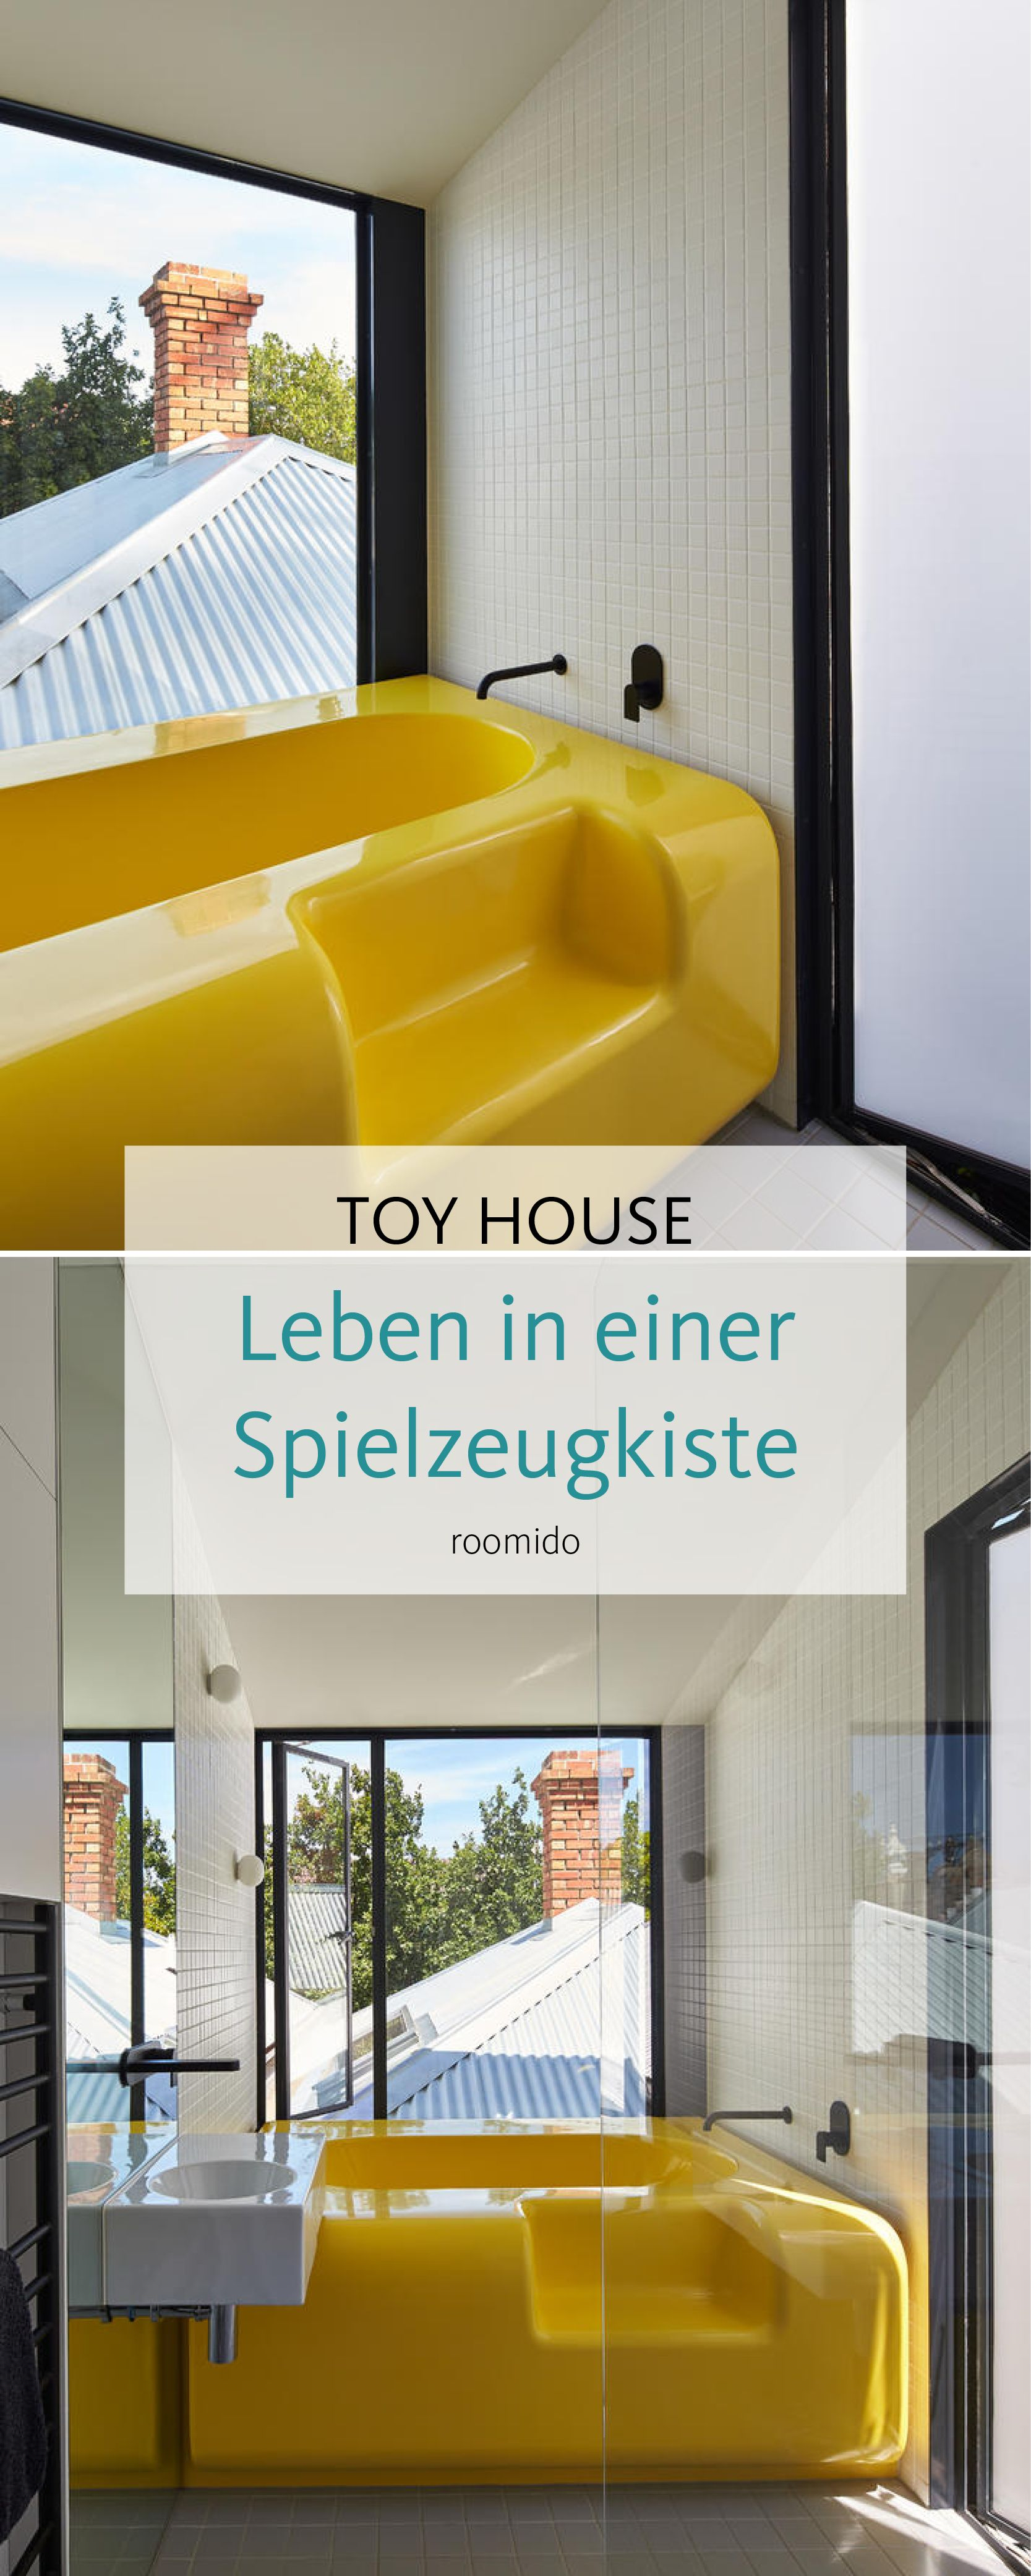 Roomido Badezimmer Modern The Toy Management House Leben In Einer überdimensionalen